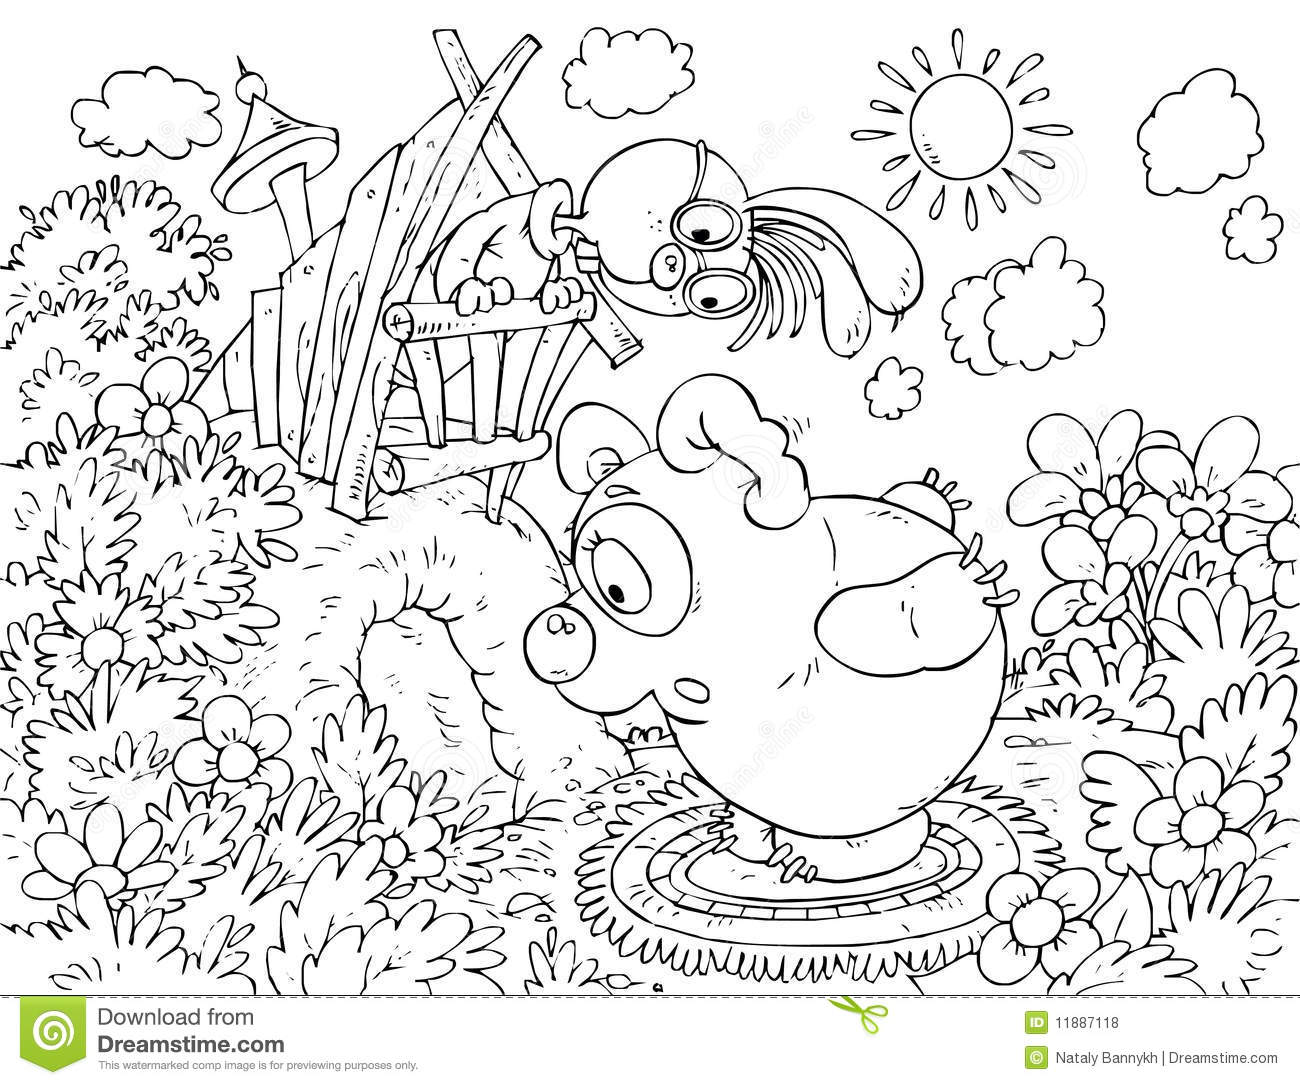 bear-cub calling the rabbit sitting in his hole stock illustration